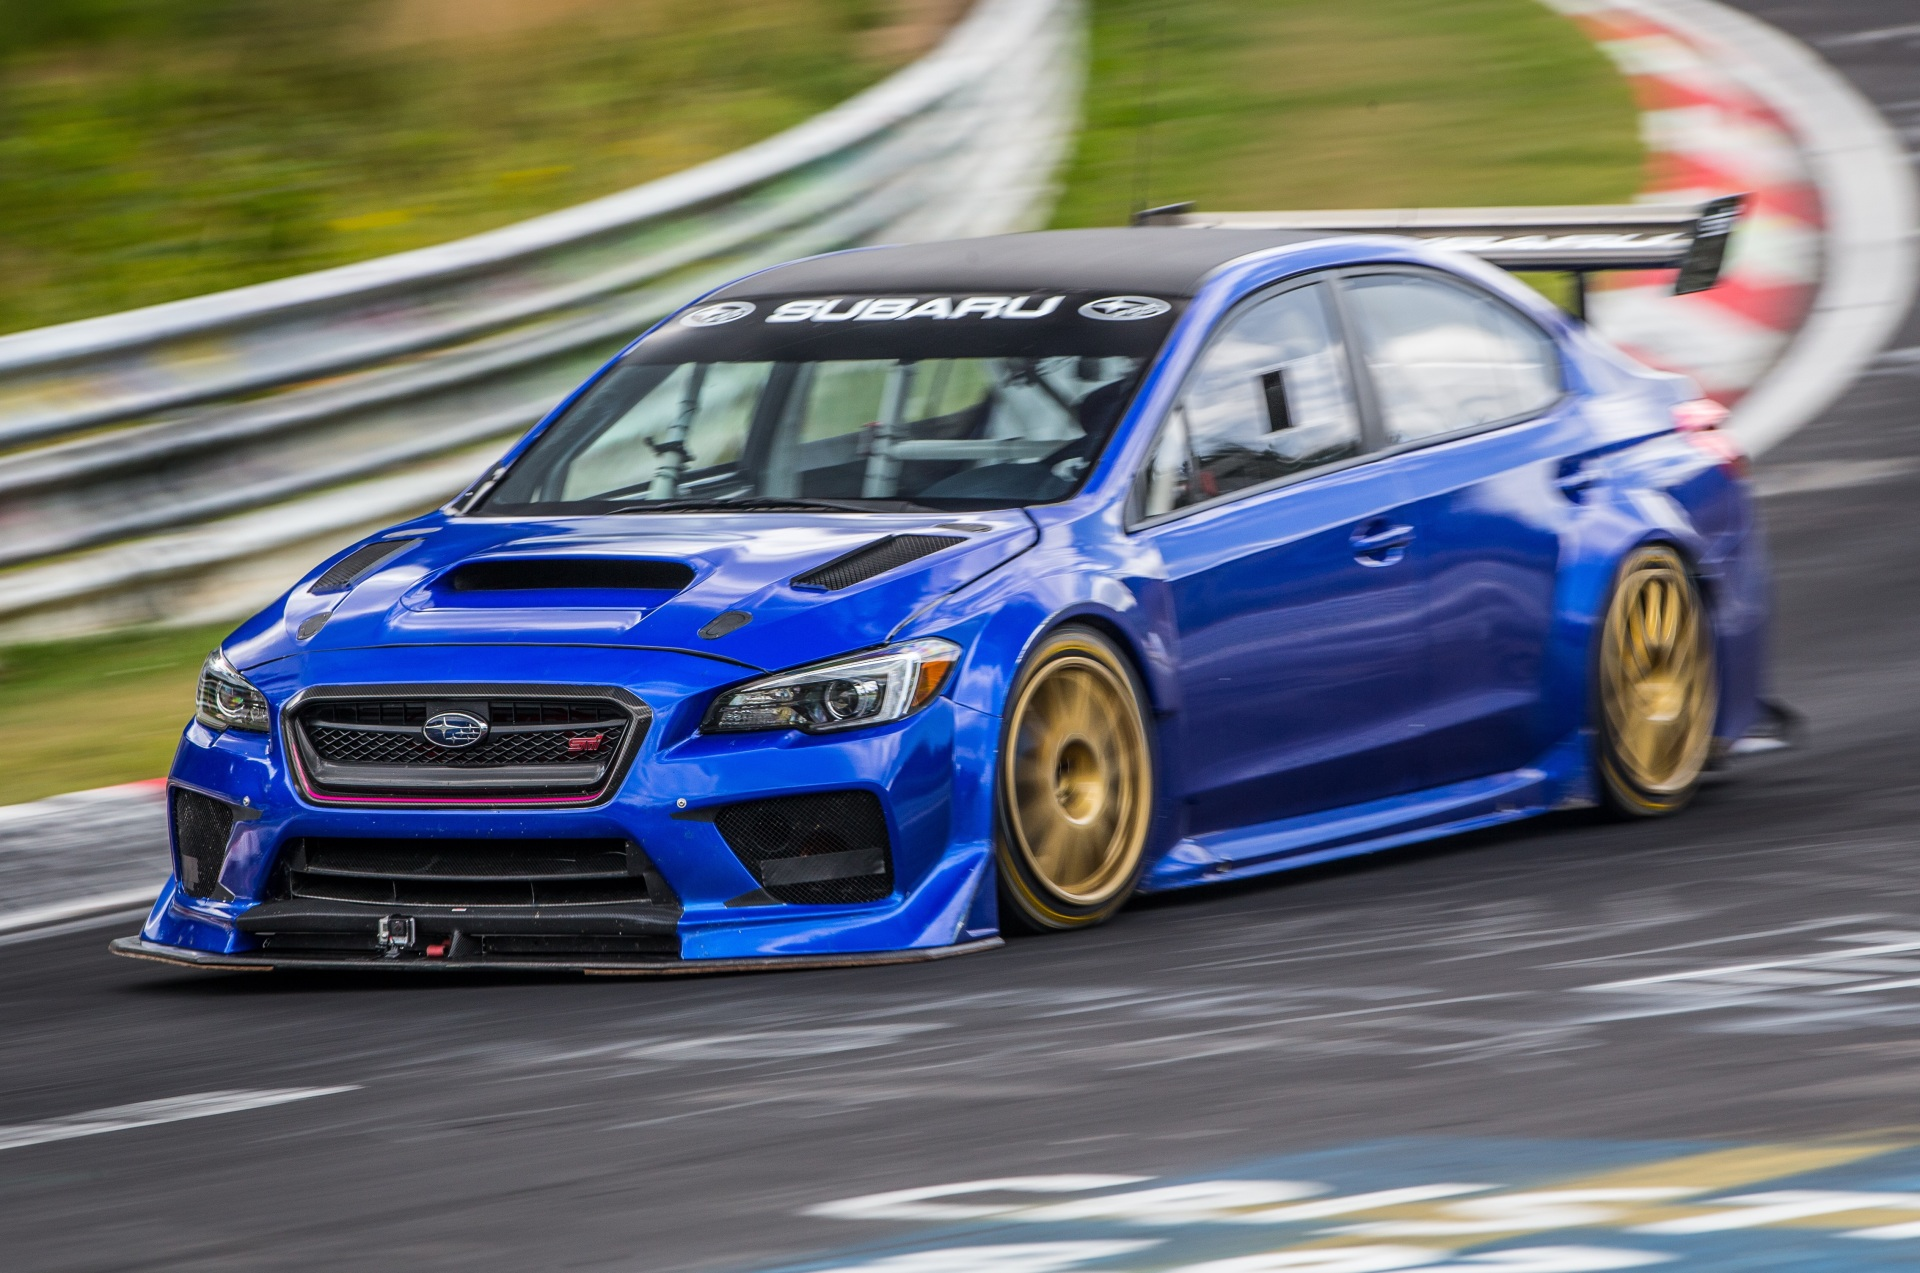 The Subaru WRX STI Type RA NBR Special  (Subaru Photo)